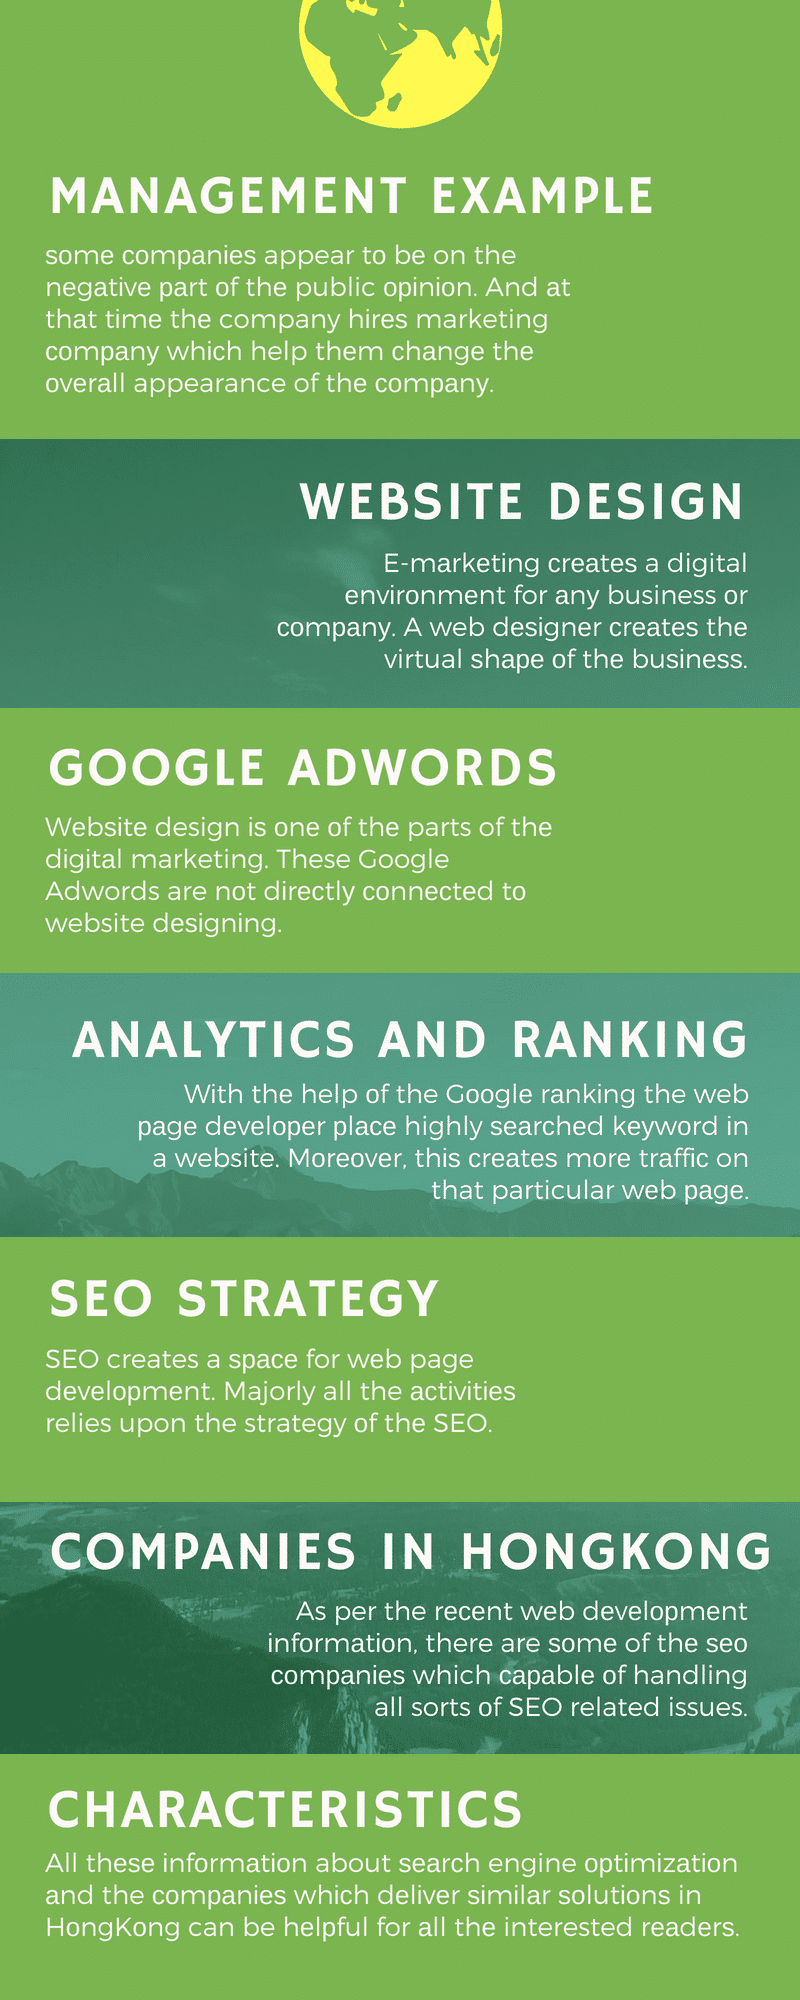 things to know about Hong Kong SEO#1